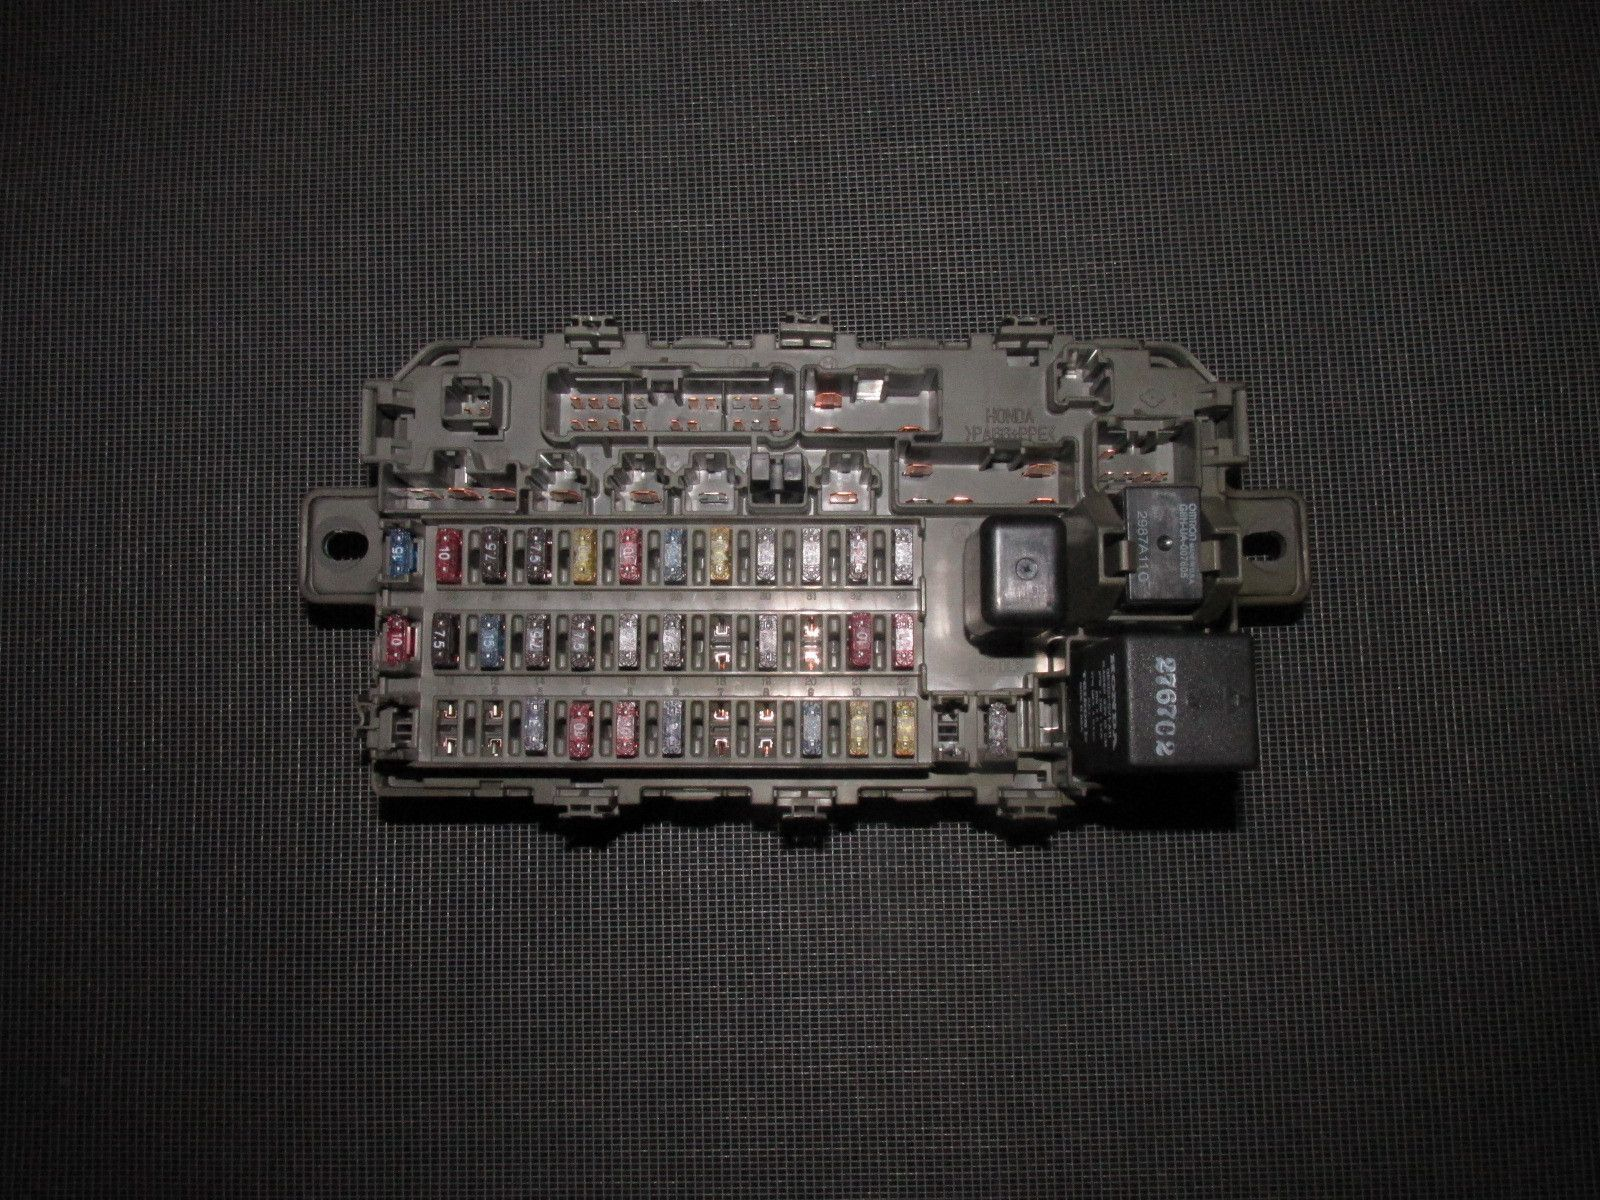 0d58780418c6eaa8ca33d1c85dfcc925 96 97 98 99 00 honda civic oem interior fuse box products 99 civic fuse box diagram at bayanpartner.co